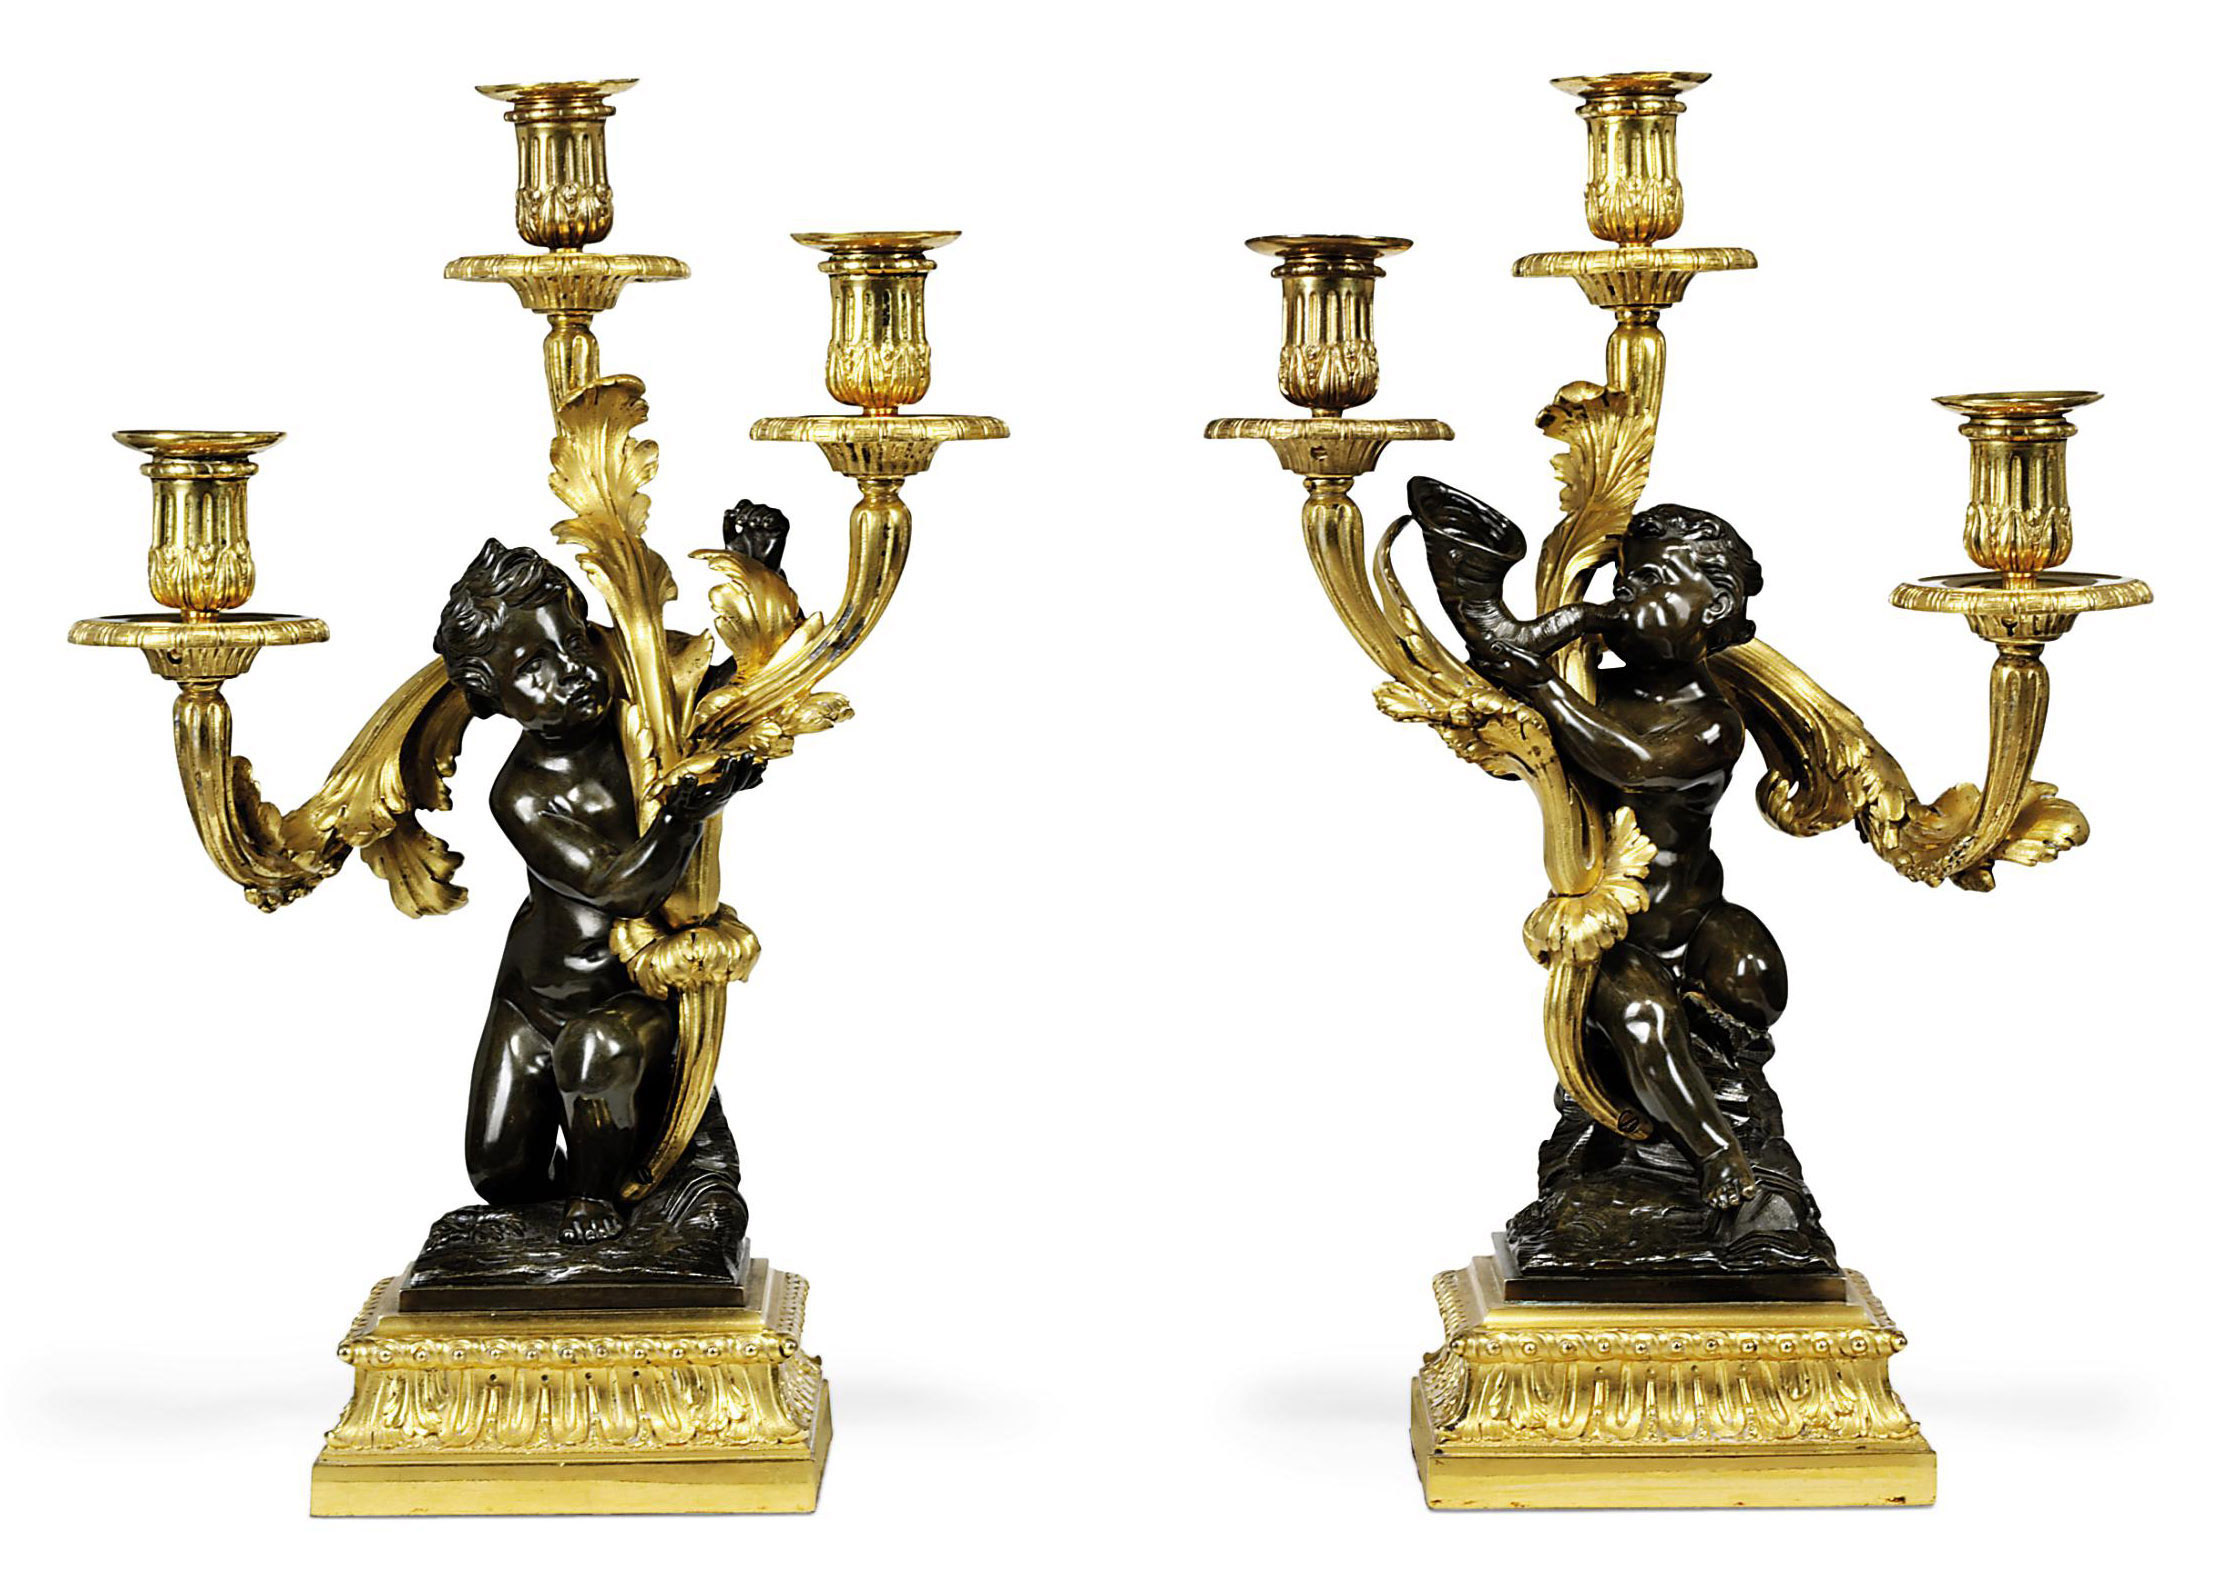 A PAIR OF RESTAURATION ORMOLU AND BRONZE THREE-LIGHT CANDELABRA